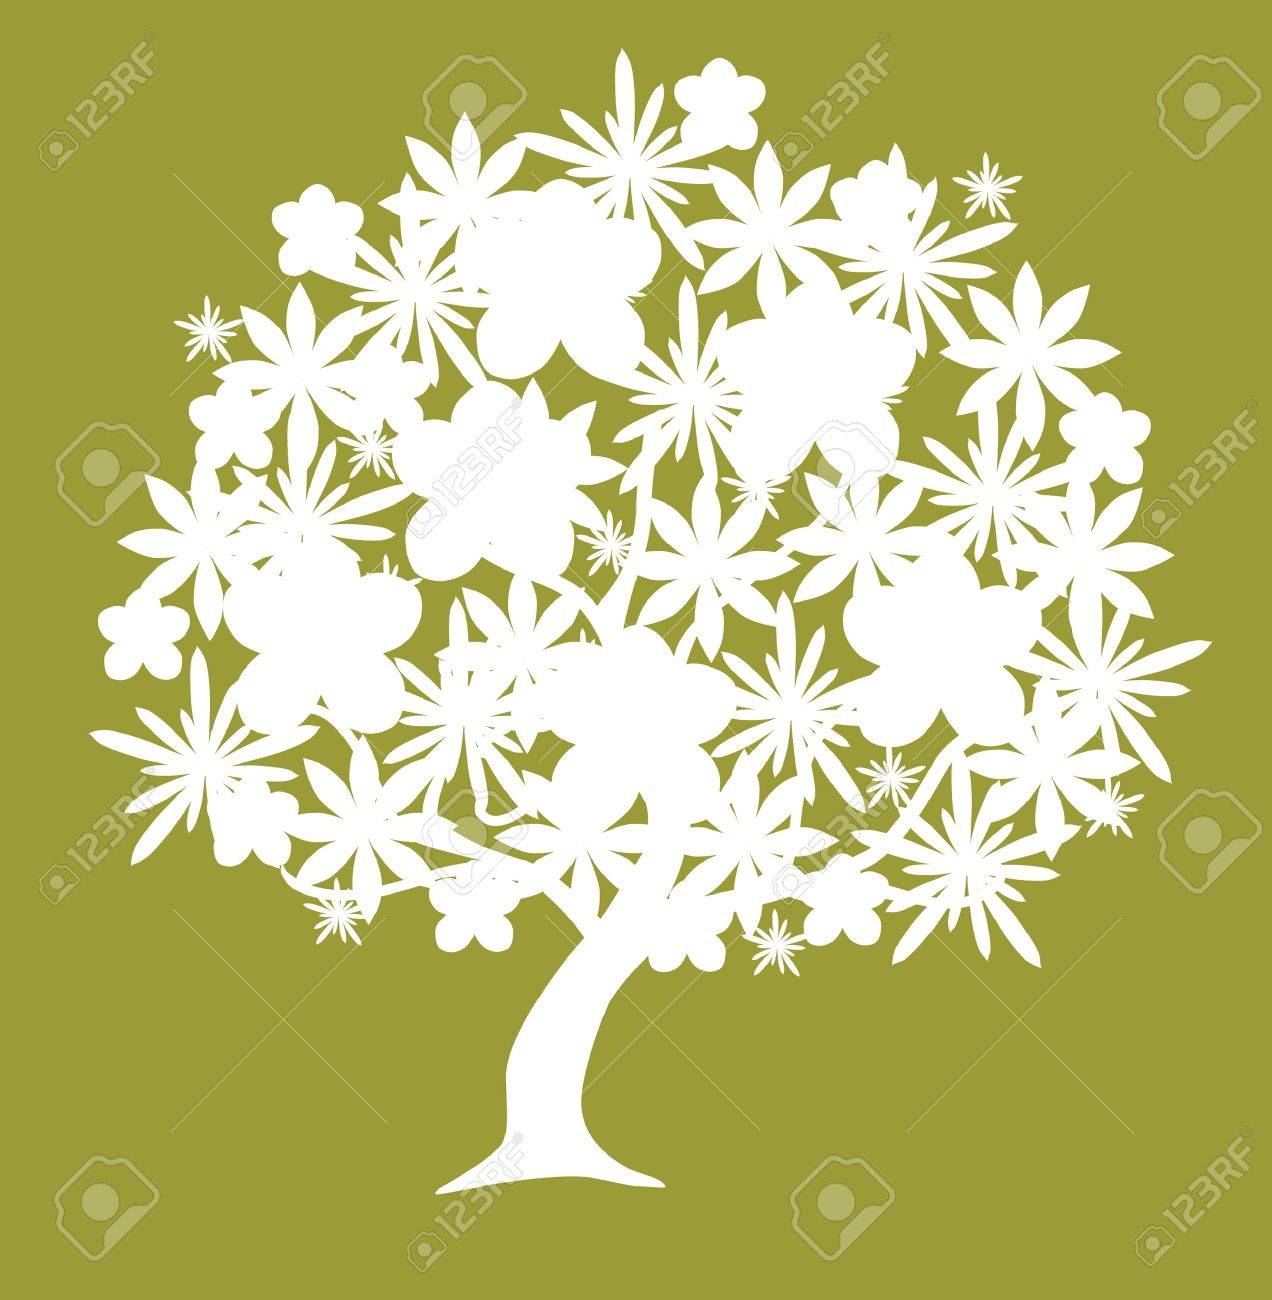 abstract floral tree, symbol of nature Stock Vector - 9148173